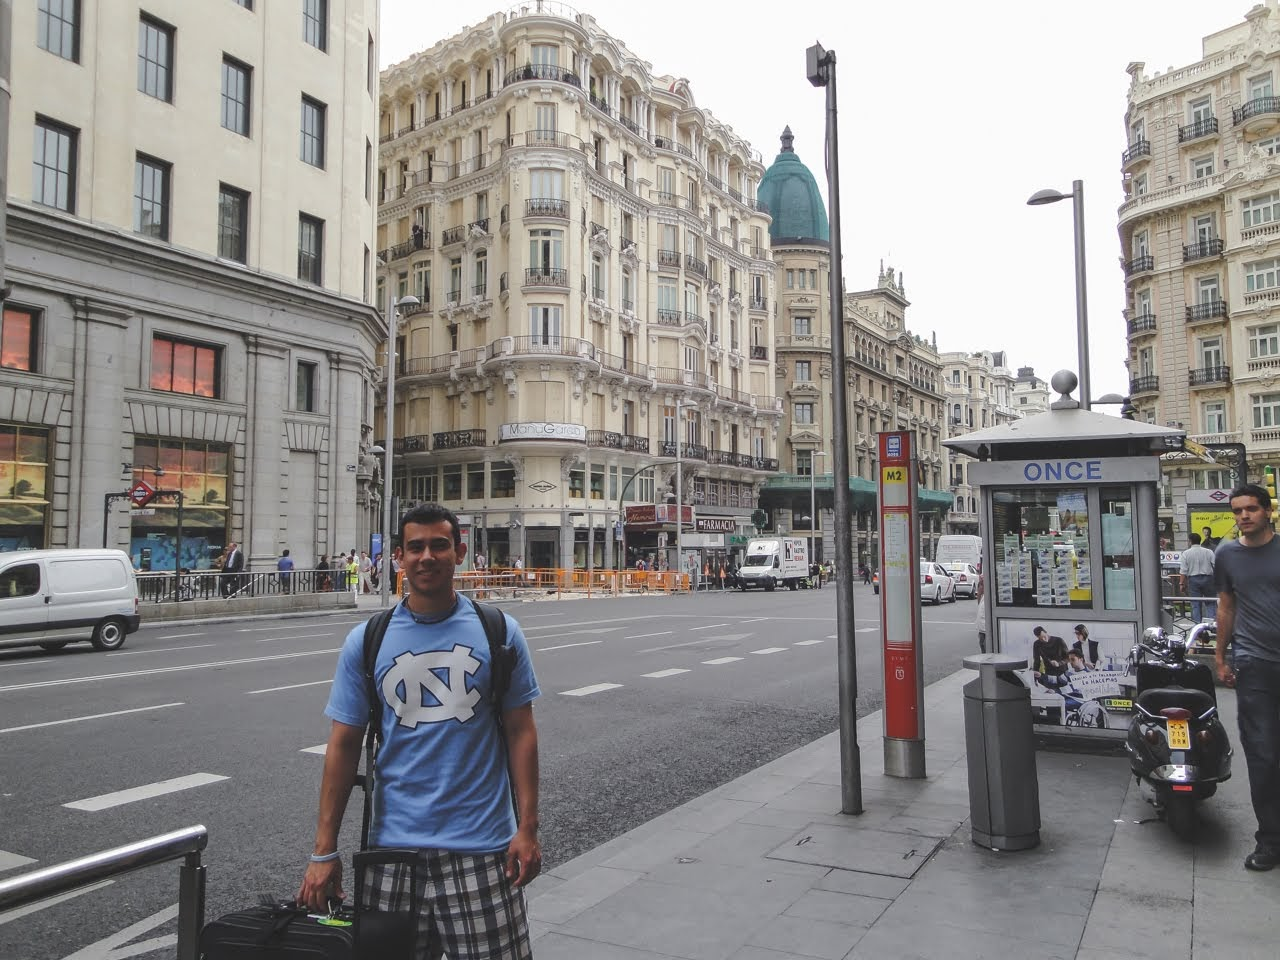 Standing along the sidewalk of La Gran Via, wearing a UNC Chapel Hill t-shirt